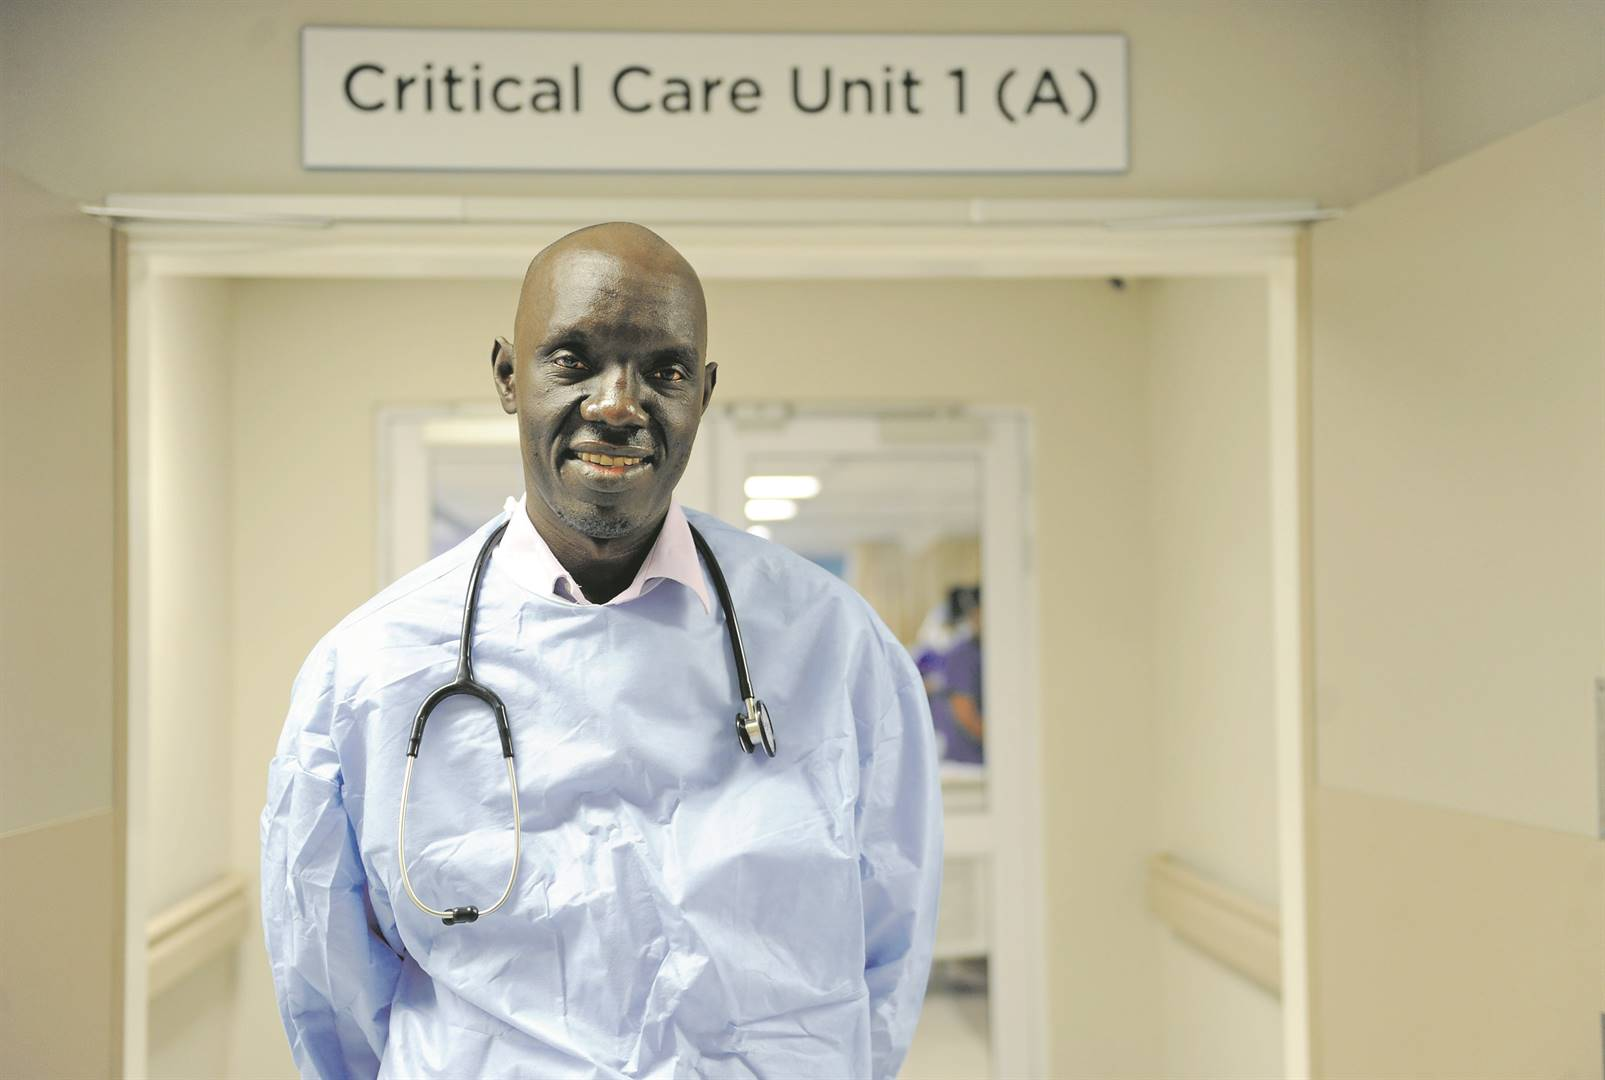 From being a young South Sudanese refugee to becoming South Africa's leading doctor